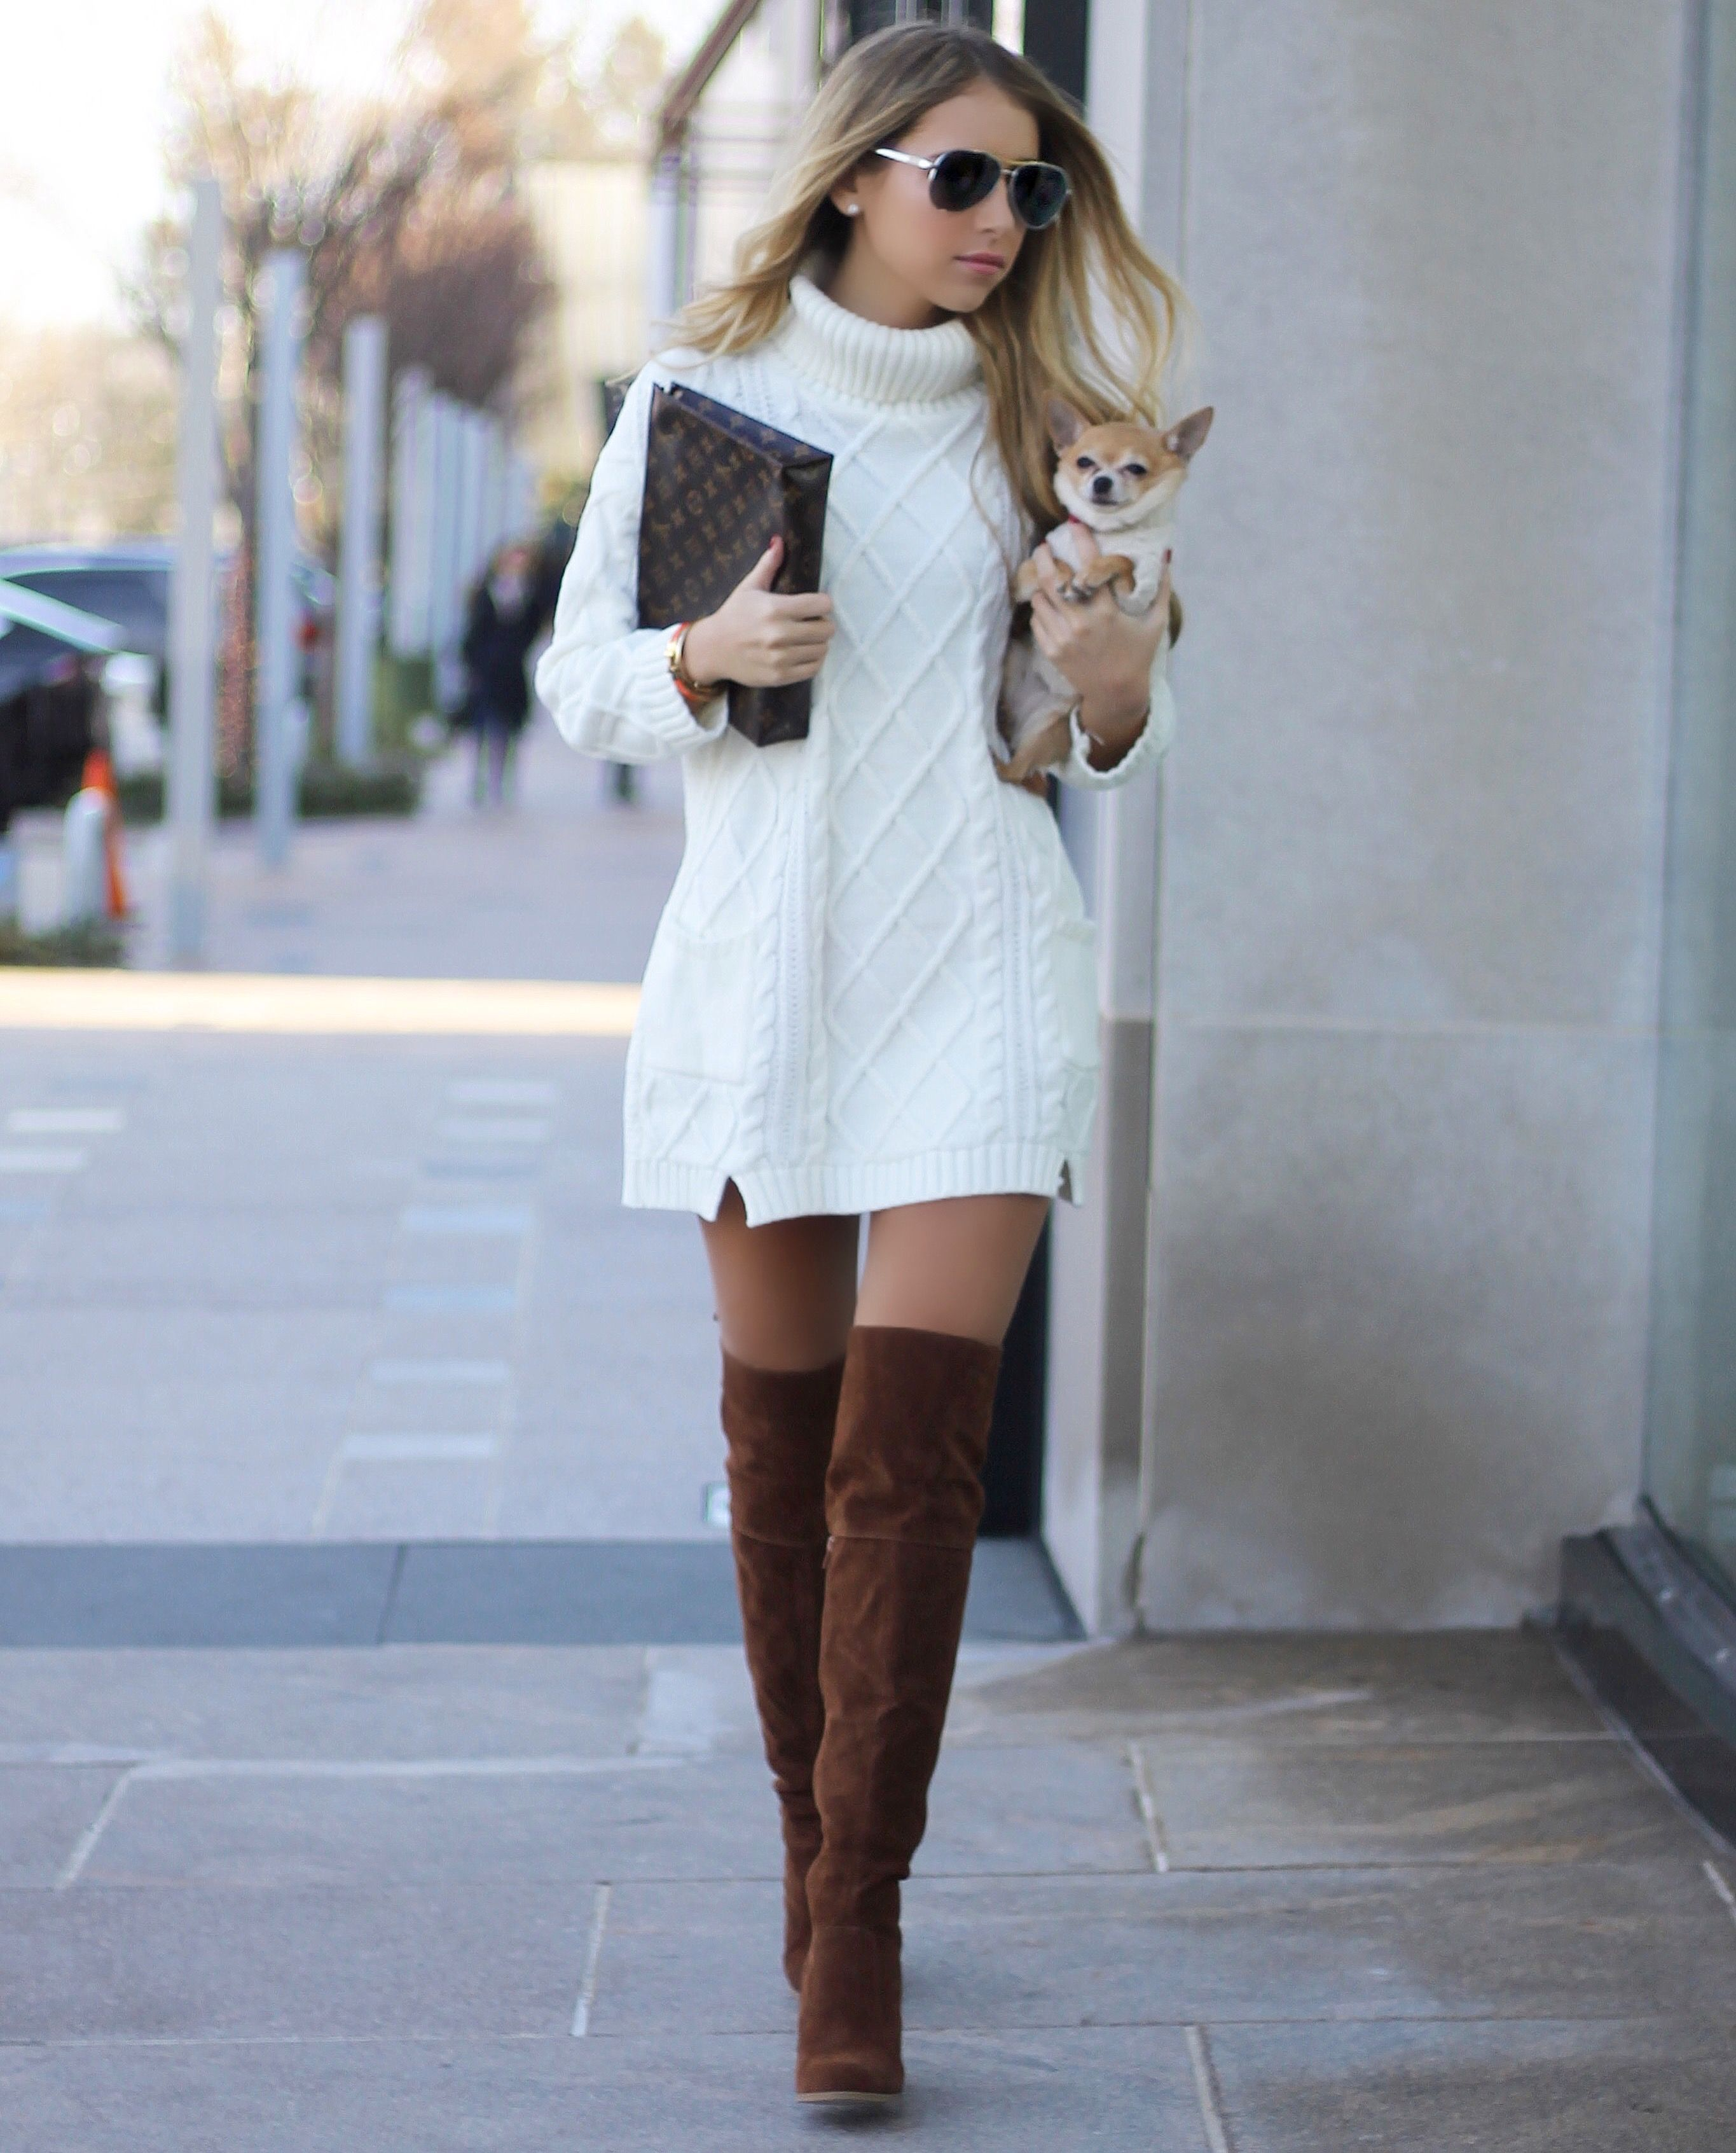 Sweater Dress Over The Knee Boots Style It With Trix Fashion Trend Winter Fashion Outfits Fashion Cable Knit Sweater Dress [ 3385 x 2730 Pixel ]